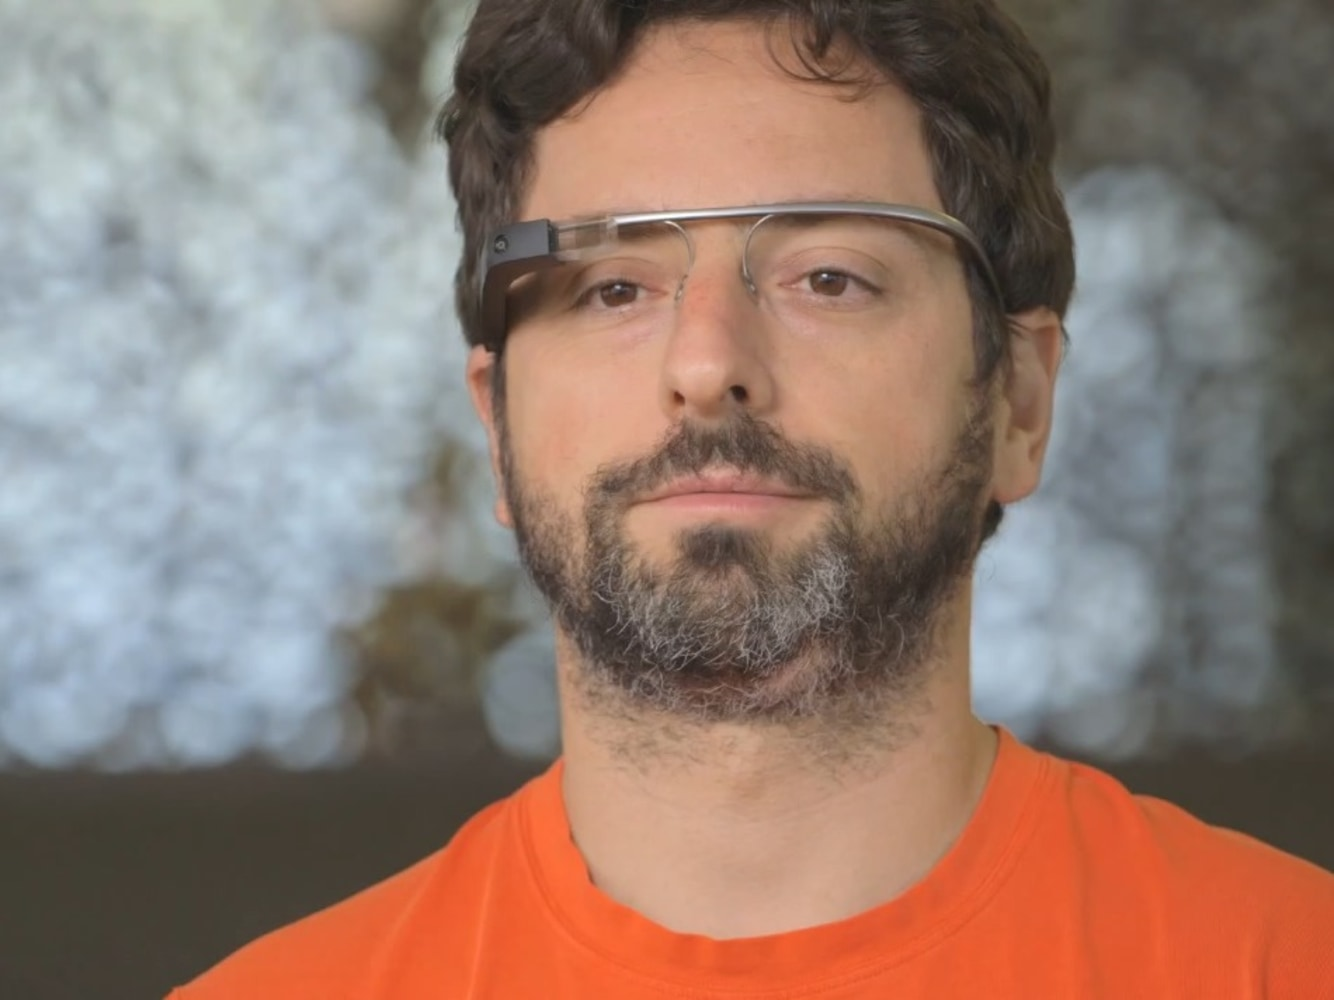 Google's Sergey Brin explains why he paid $330,000 for lab burger